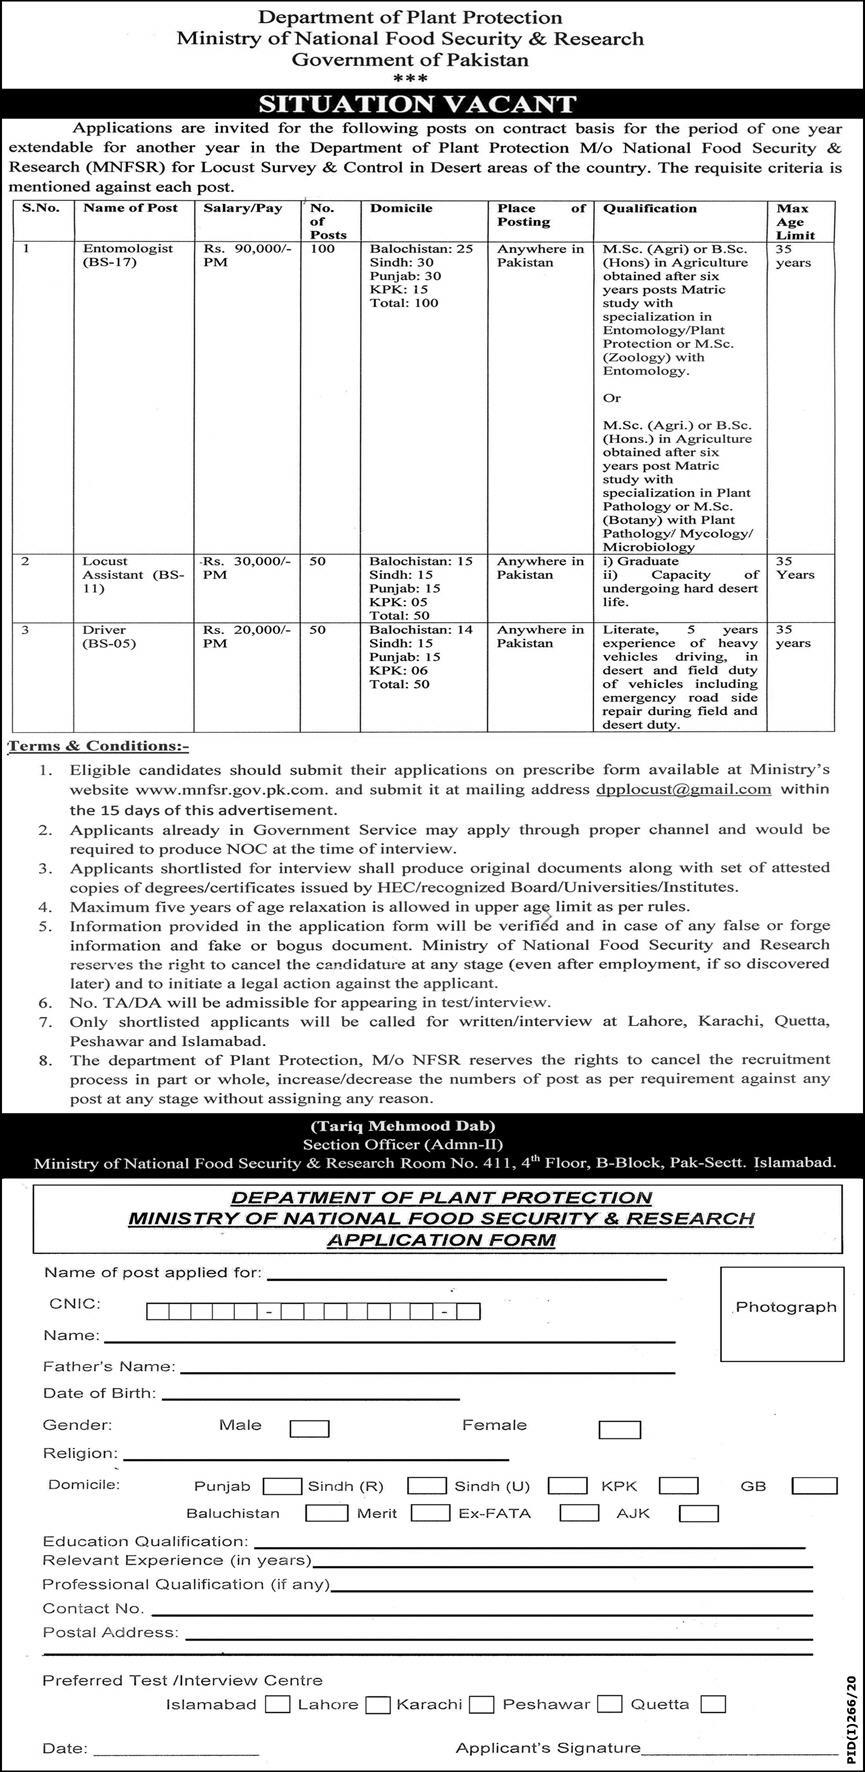 Department of Plant Protection Jobs 2020 For Islamabad